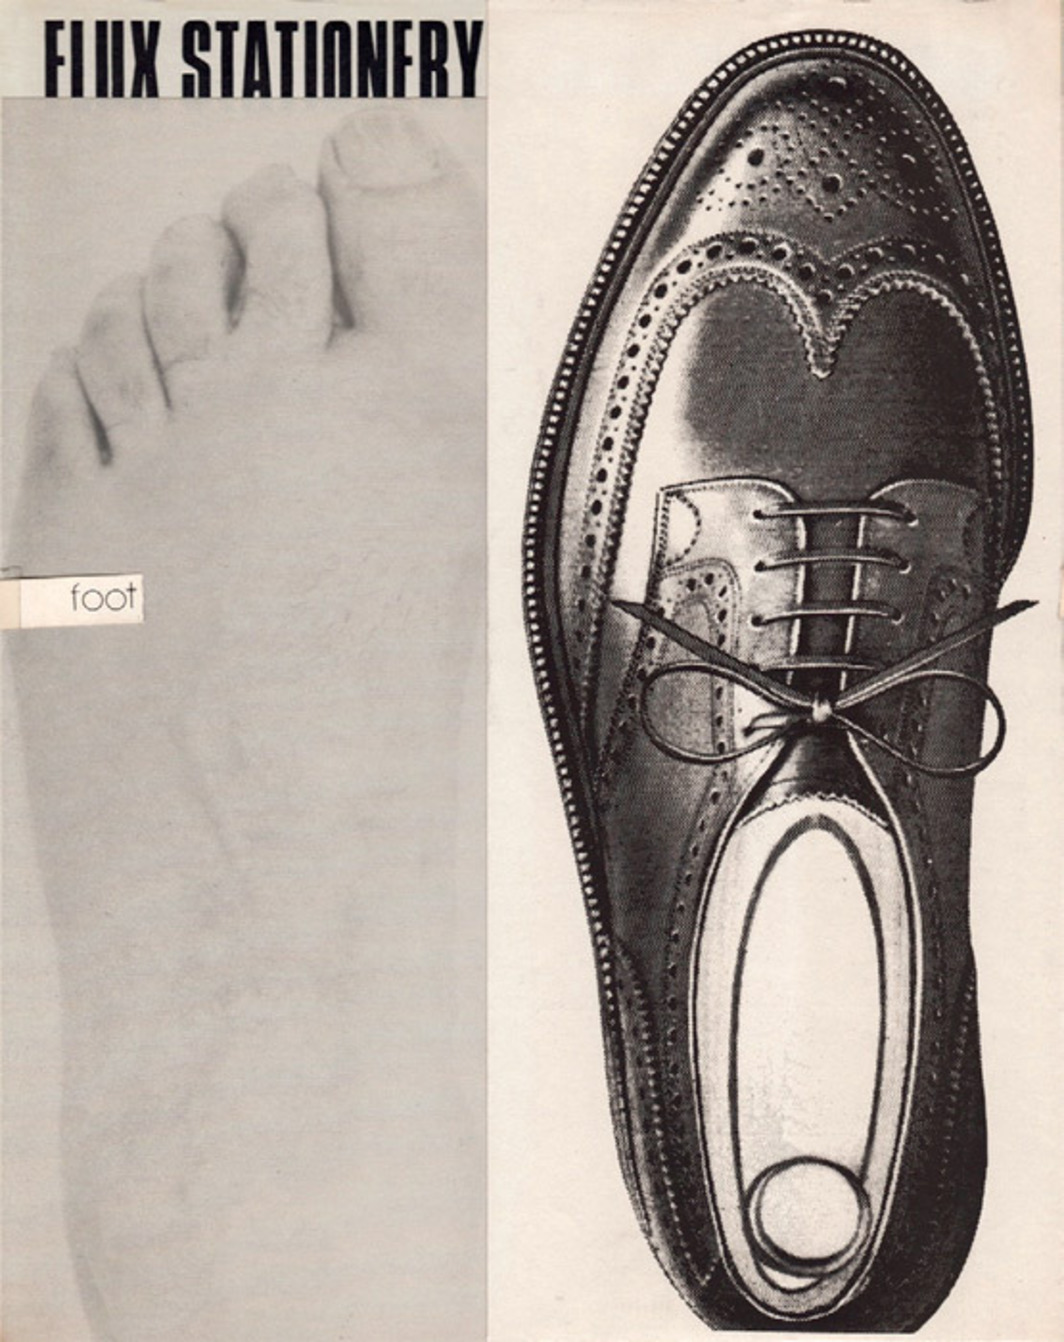 "George Maciunas, Foot in Shoe, 1973–77, offset print on paper, 10 1/2 x 8 1/2"". From ""Wooster Enterprises."""